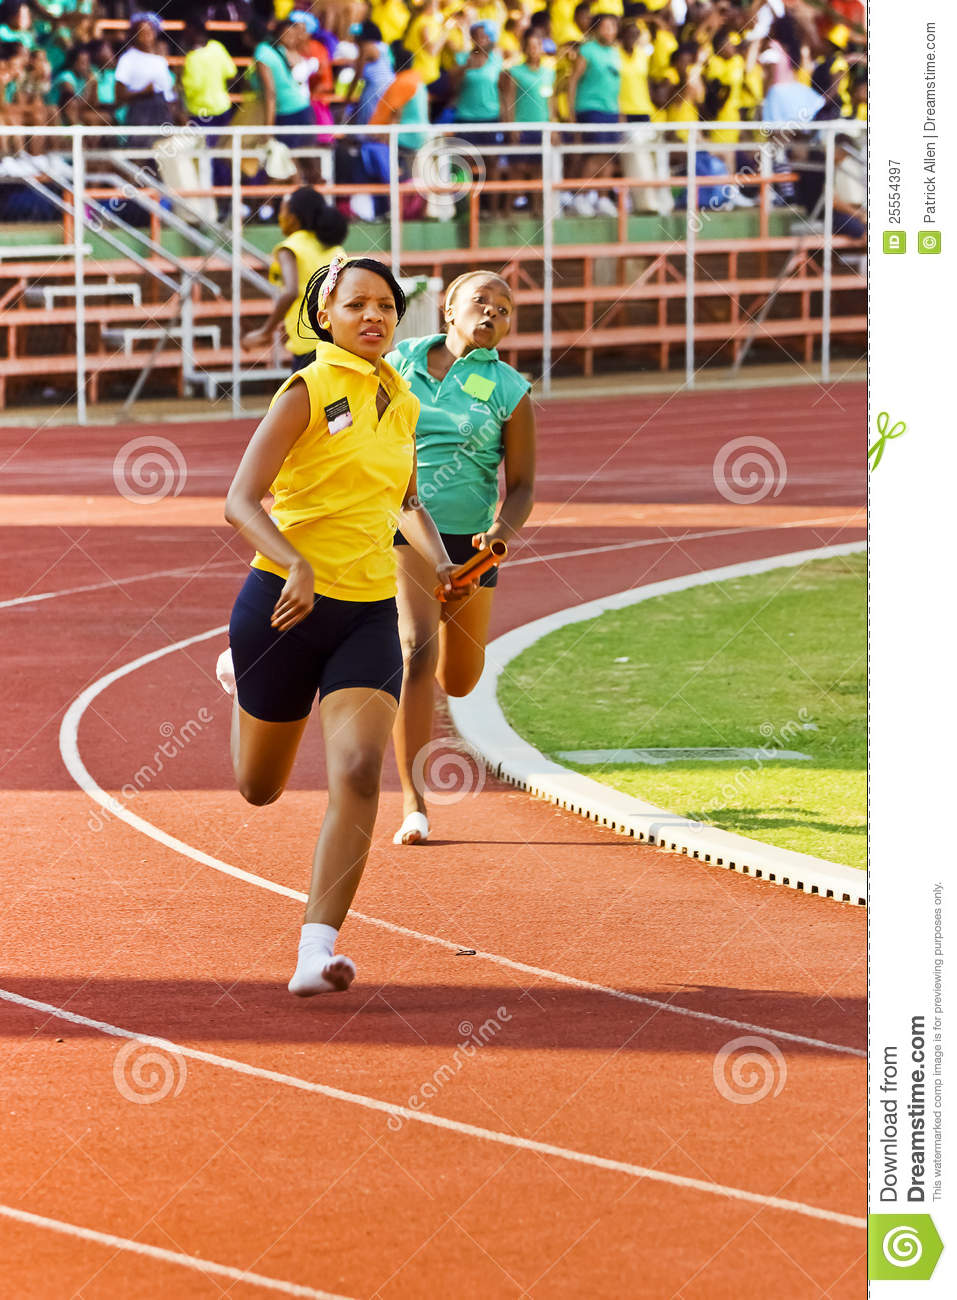 marian university map program with Royalty Free Stock Photography Female Athletes Running Relay Race Image25554397 on Kendrick Lamar S Good Kid M A A D City Debuts At No 2 further Swanderski furthermore Royalty Free Stock Photography Female Athletes Running Relay Race Image25554397 moreover Will A Black Coach Cut Down The  s At March Madness together with Admission Information College Of Nursing Wayne State.